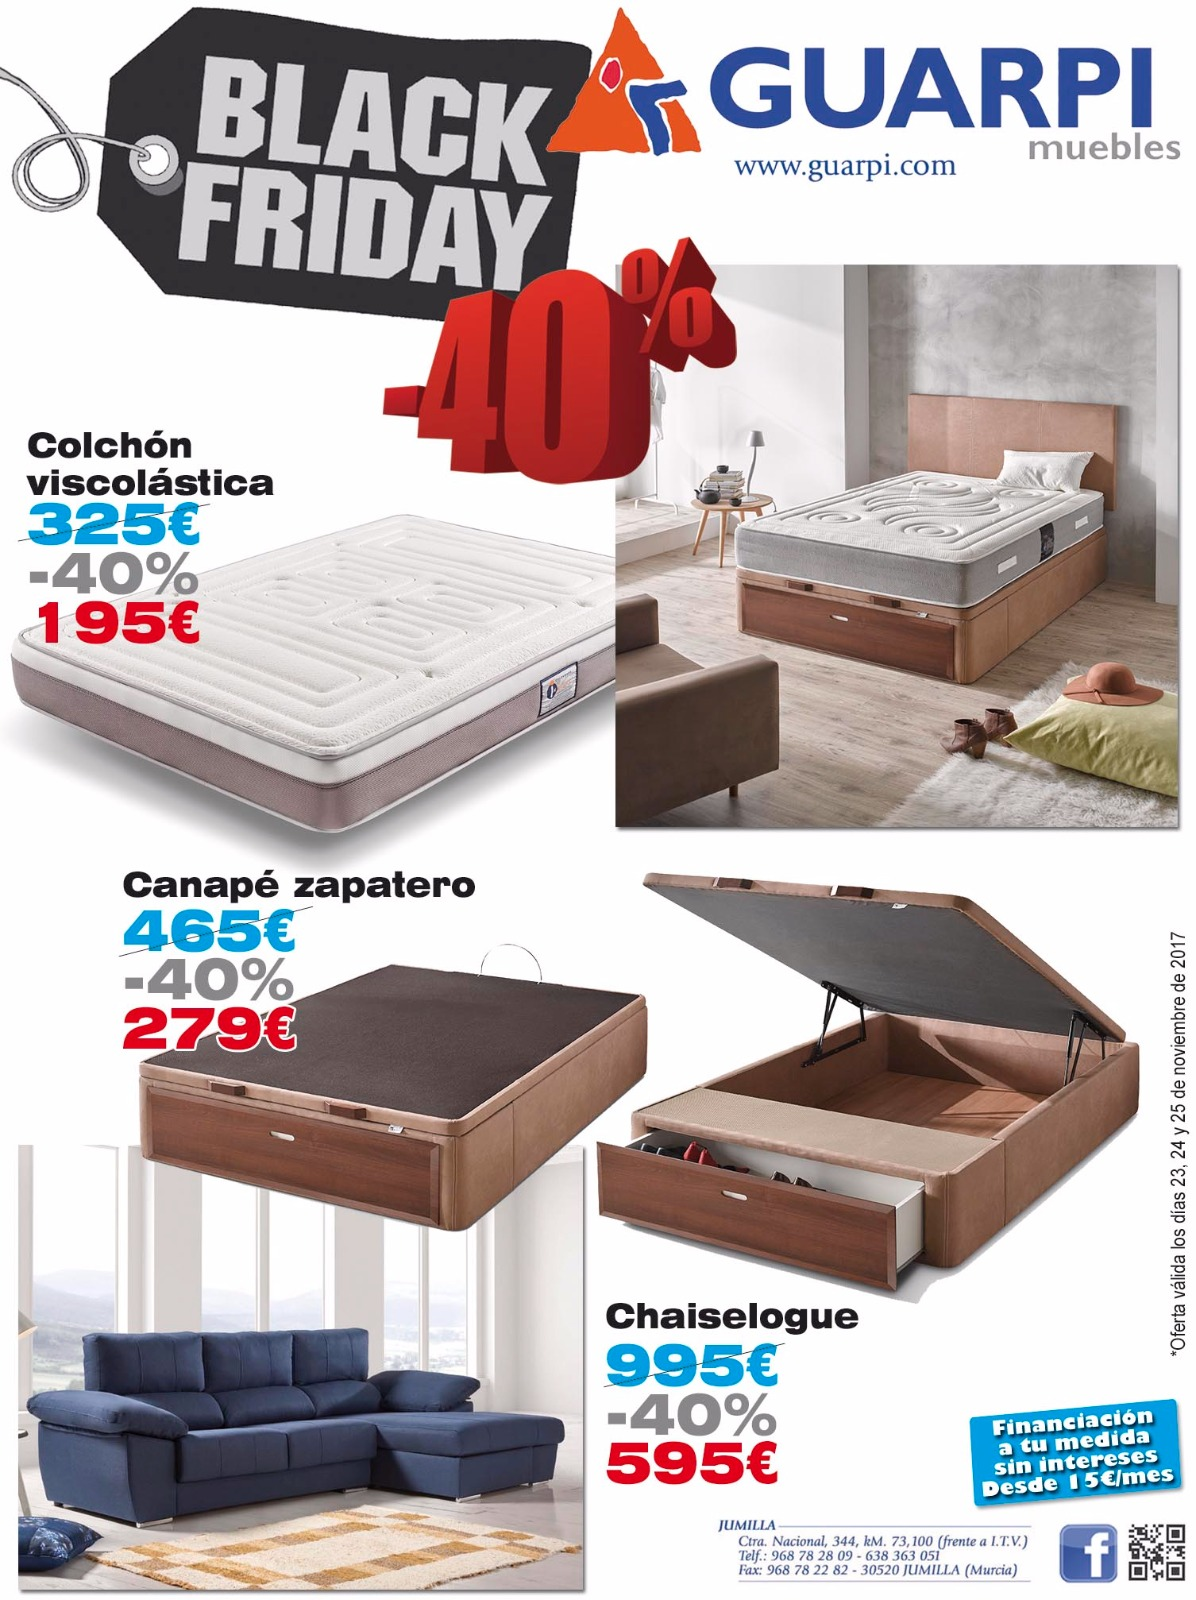 Canape Black Friday Black Friday En Guarpi Muebles El Eco De Jumilla